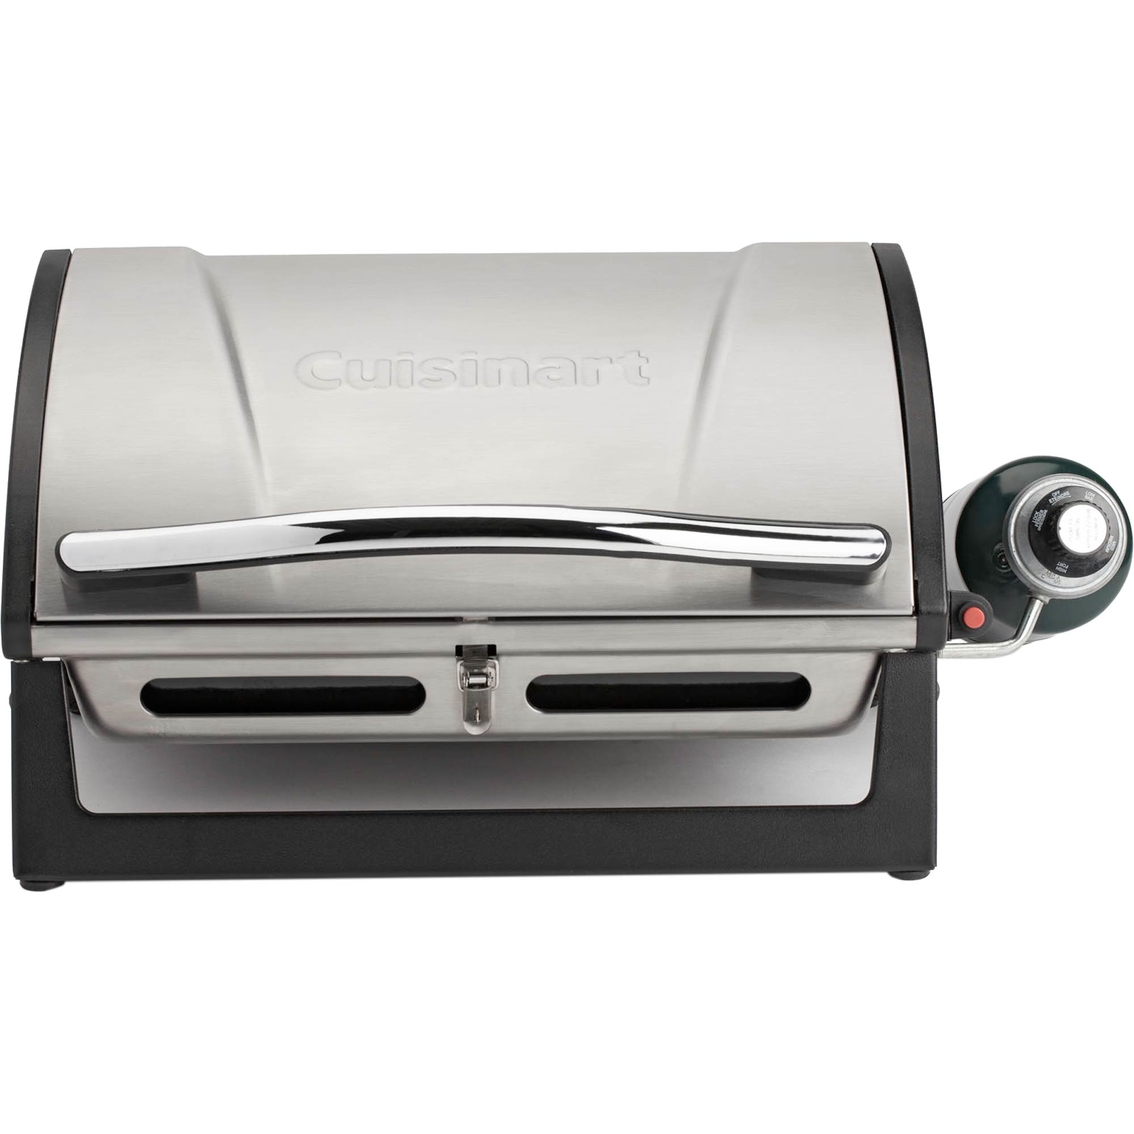 Cuisinart CGG 059 Grillster Portable Gas Grill